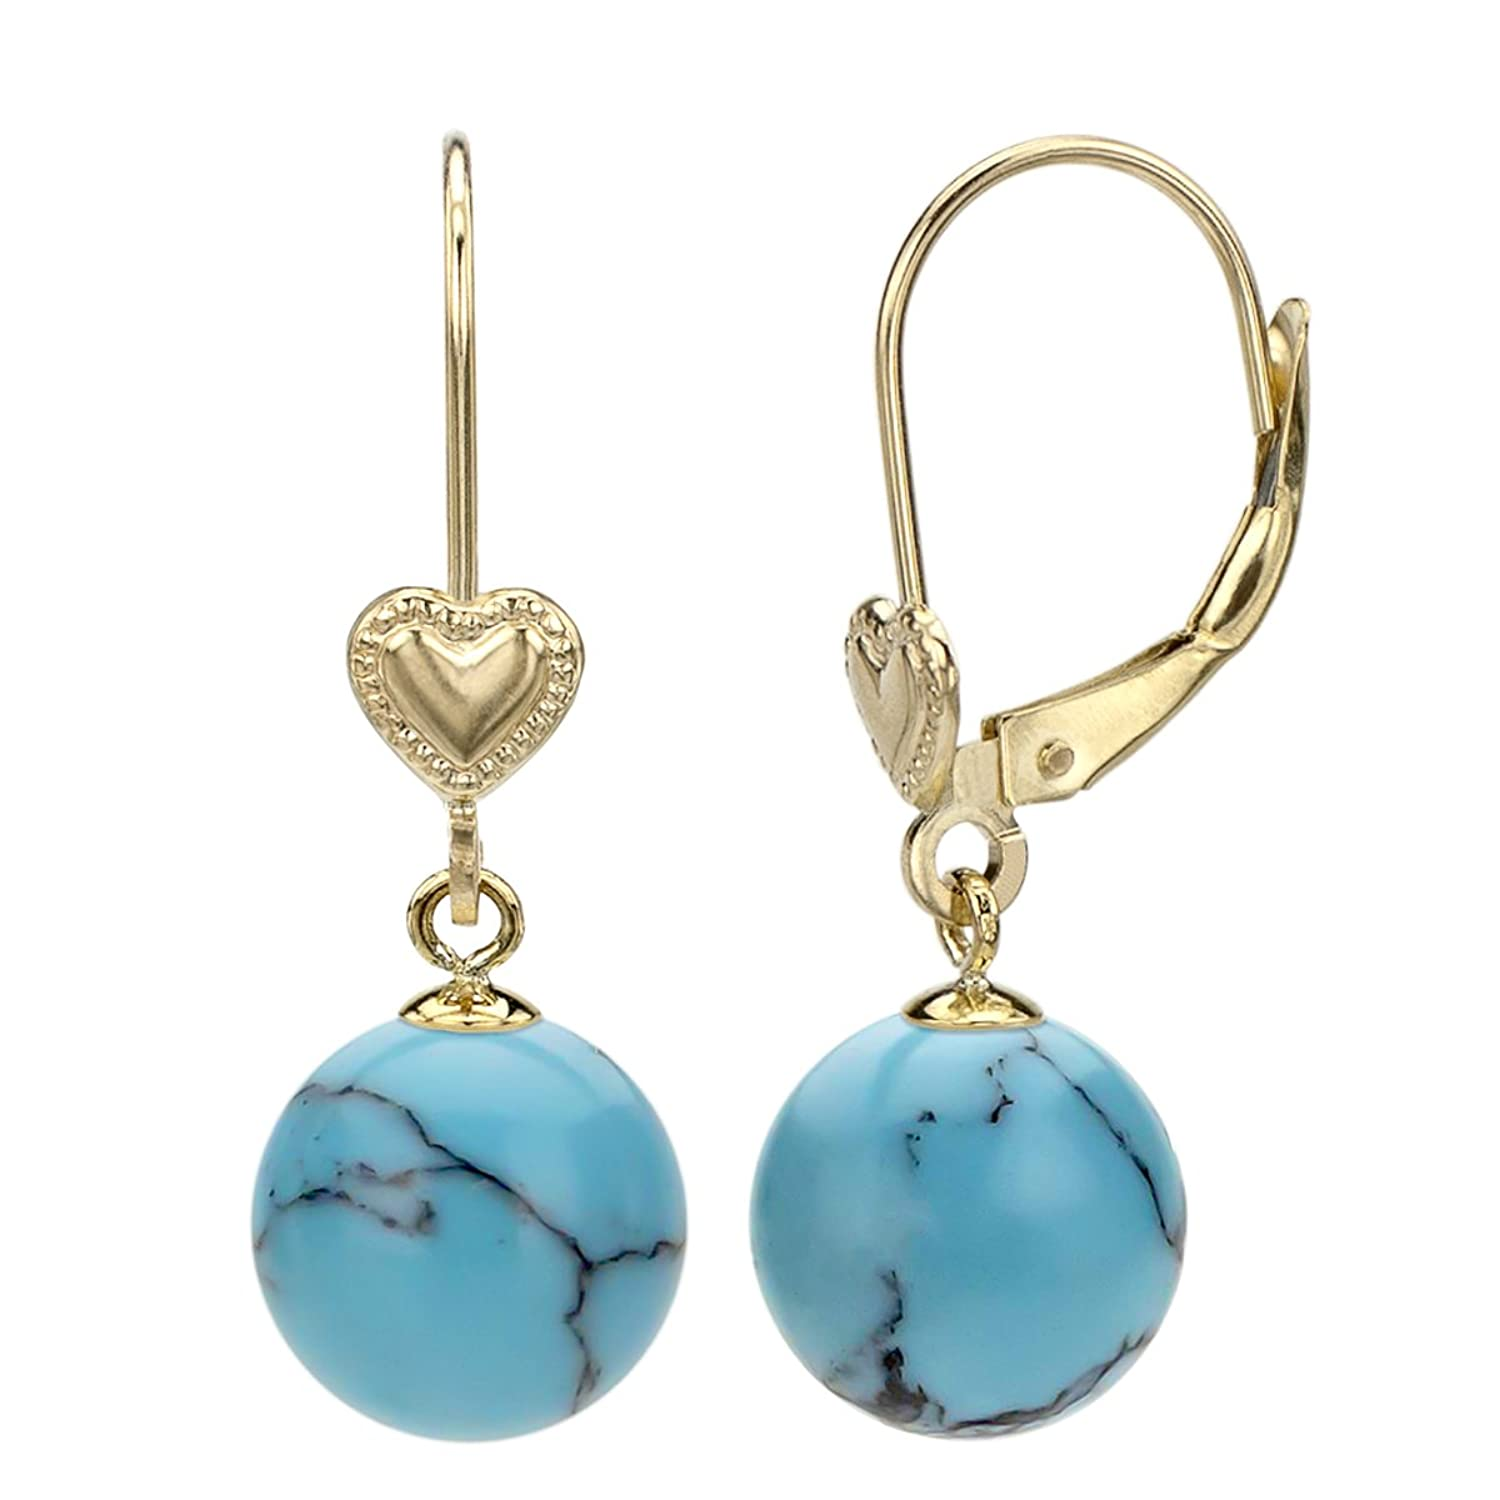 14k Yellow Gold 8-8.5mm Round Simulated Blue Howlite Turquoise Heart Design Lever-back Earrings